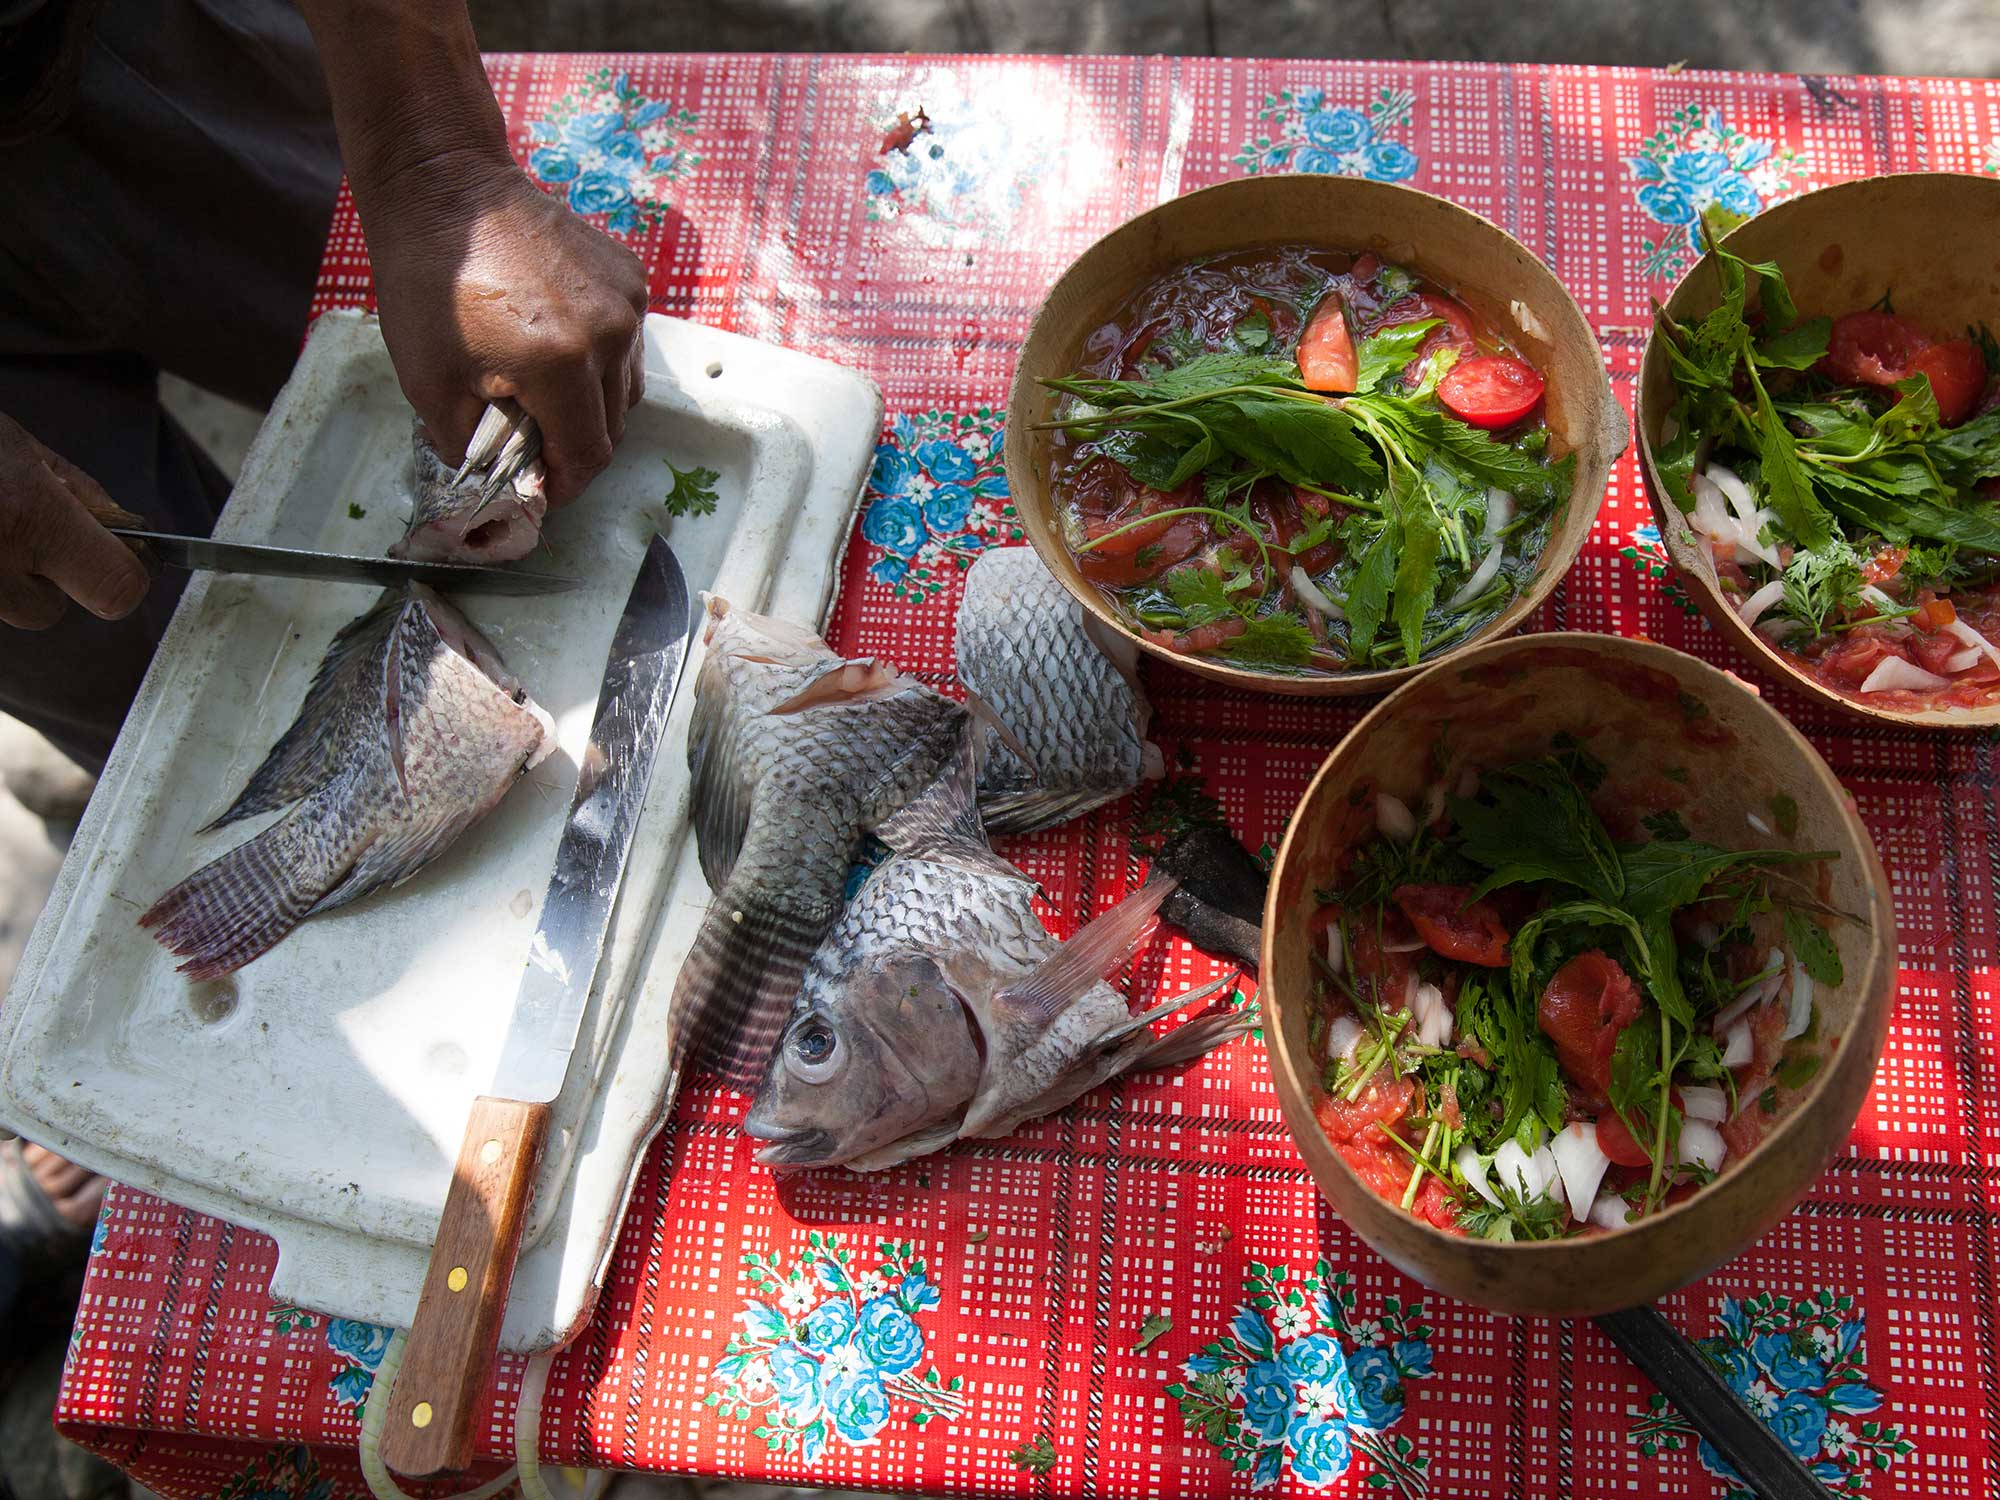 The Final Ingredient to This Mexican Soup? A Hot Rock to Cook It